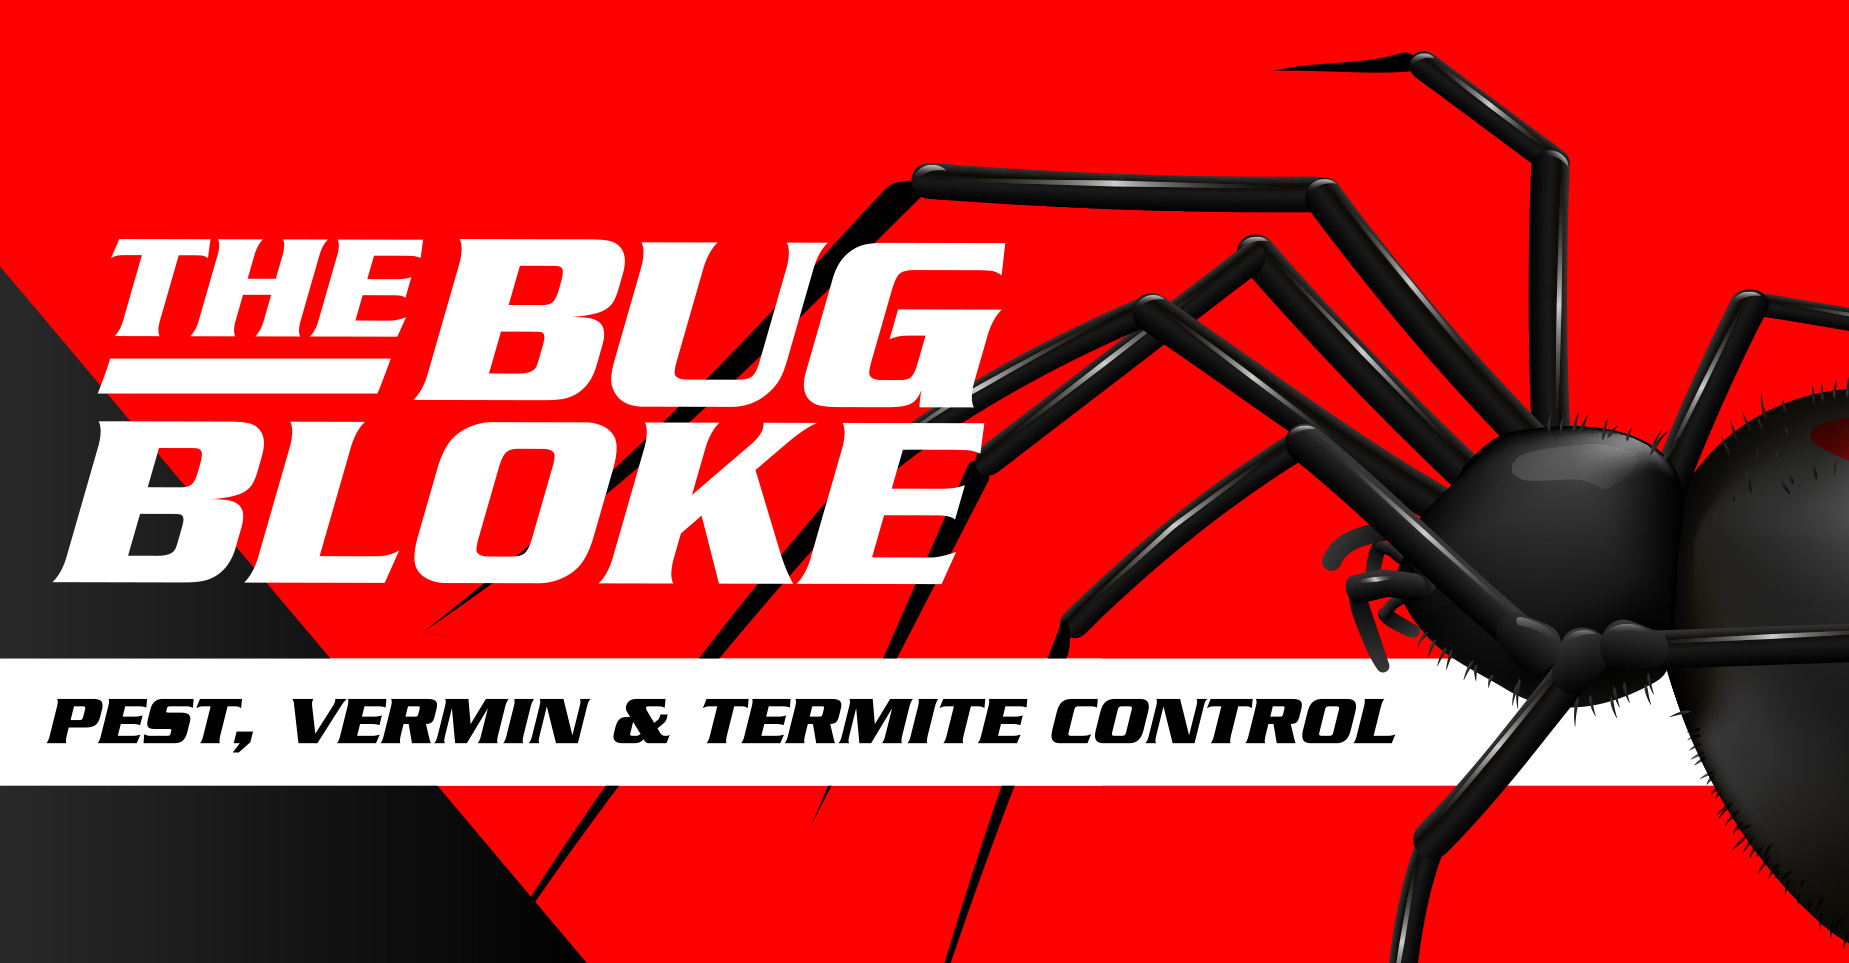 the bug bloke residential and commercial pest control header image